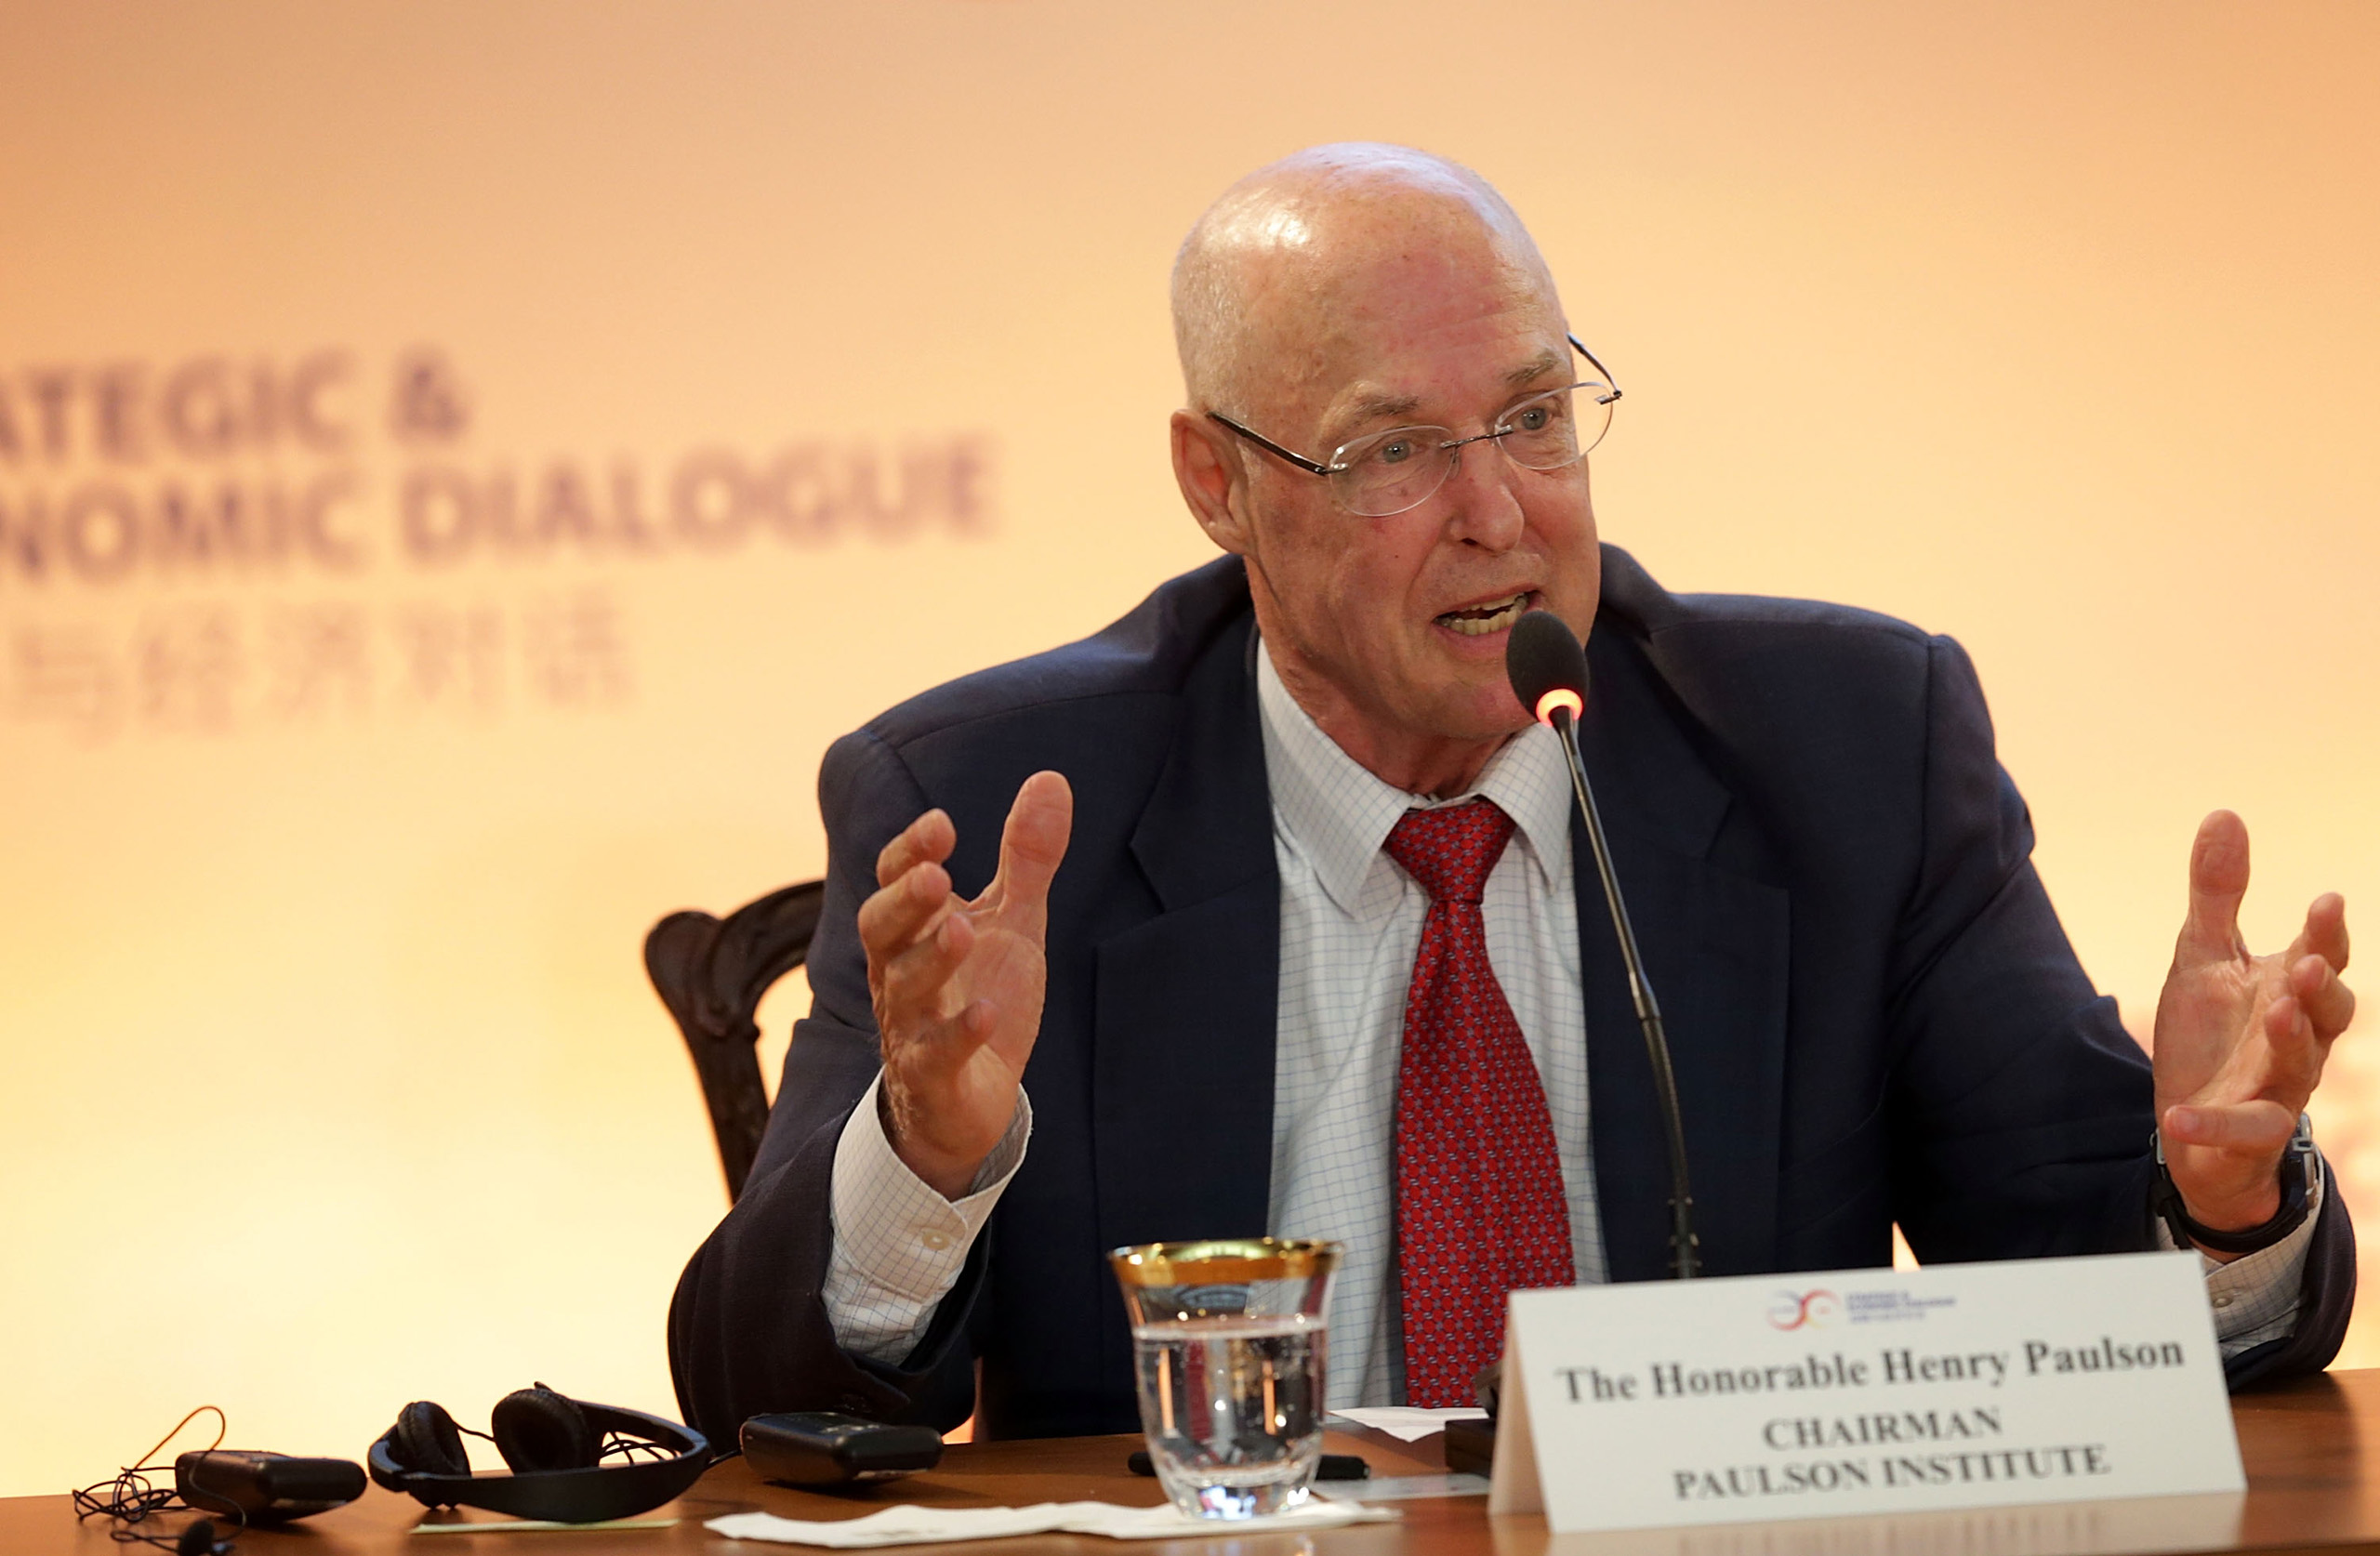 Former Secretary of the Treasury Henry Paulson speaks during a panel discussion on energy and environment cooperation during the Strategic and Economic Dialogue in Washington, D.C. on June 23, 2015.